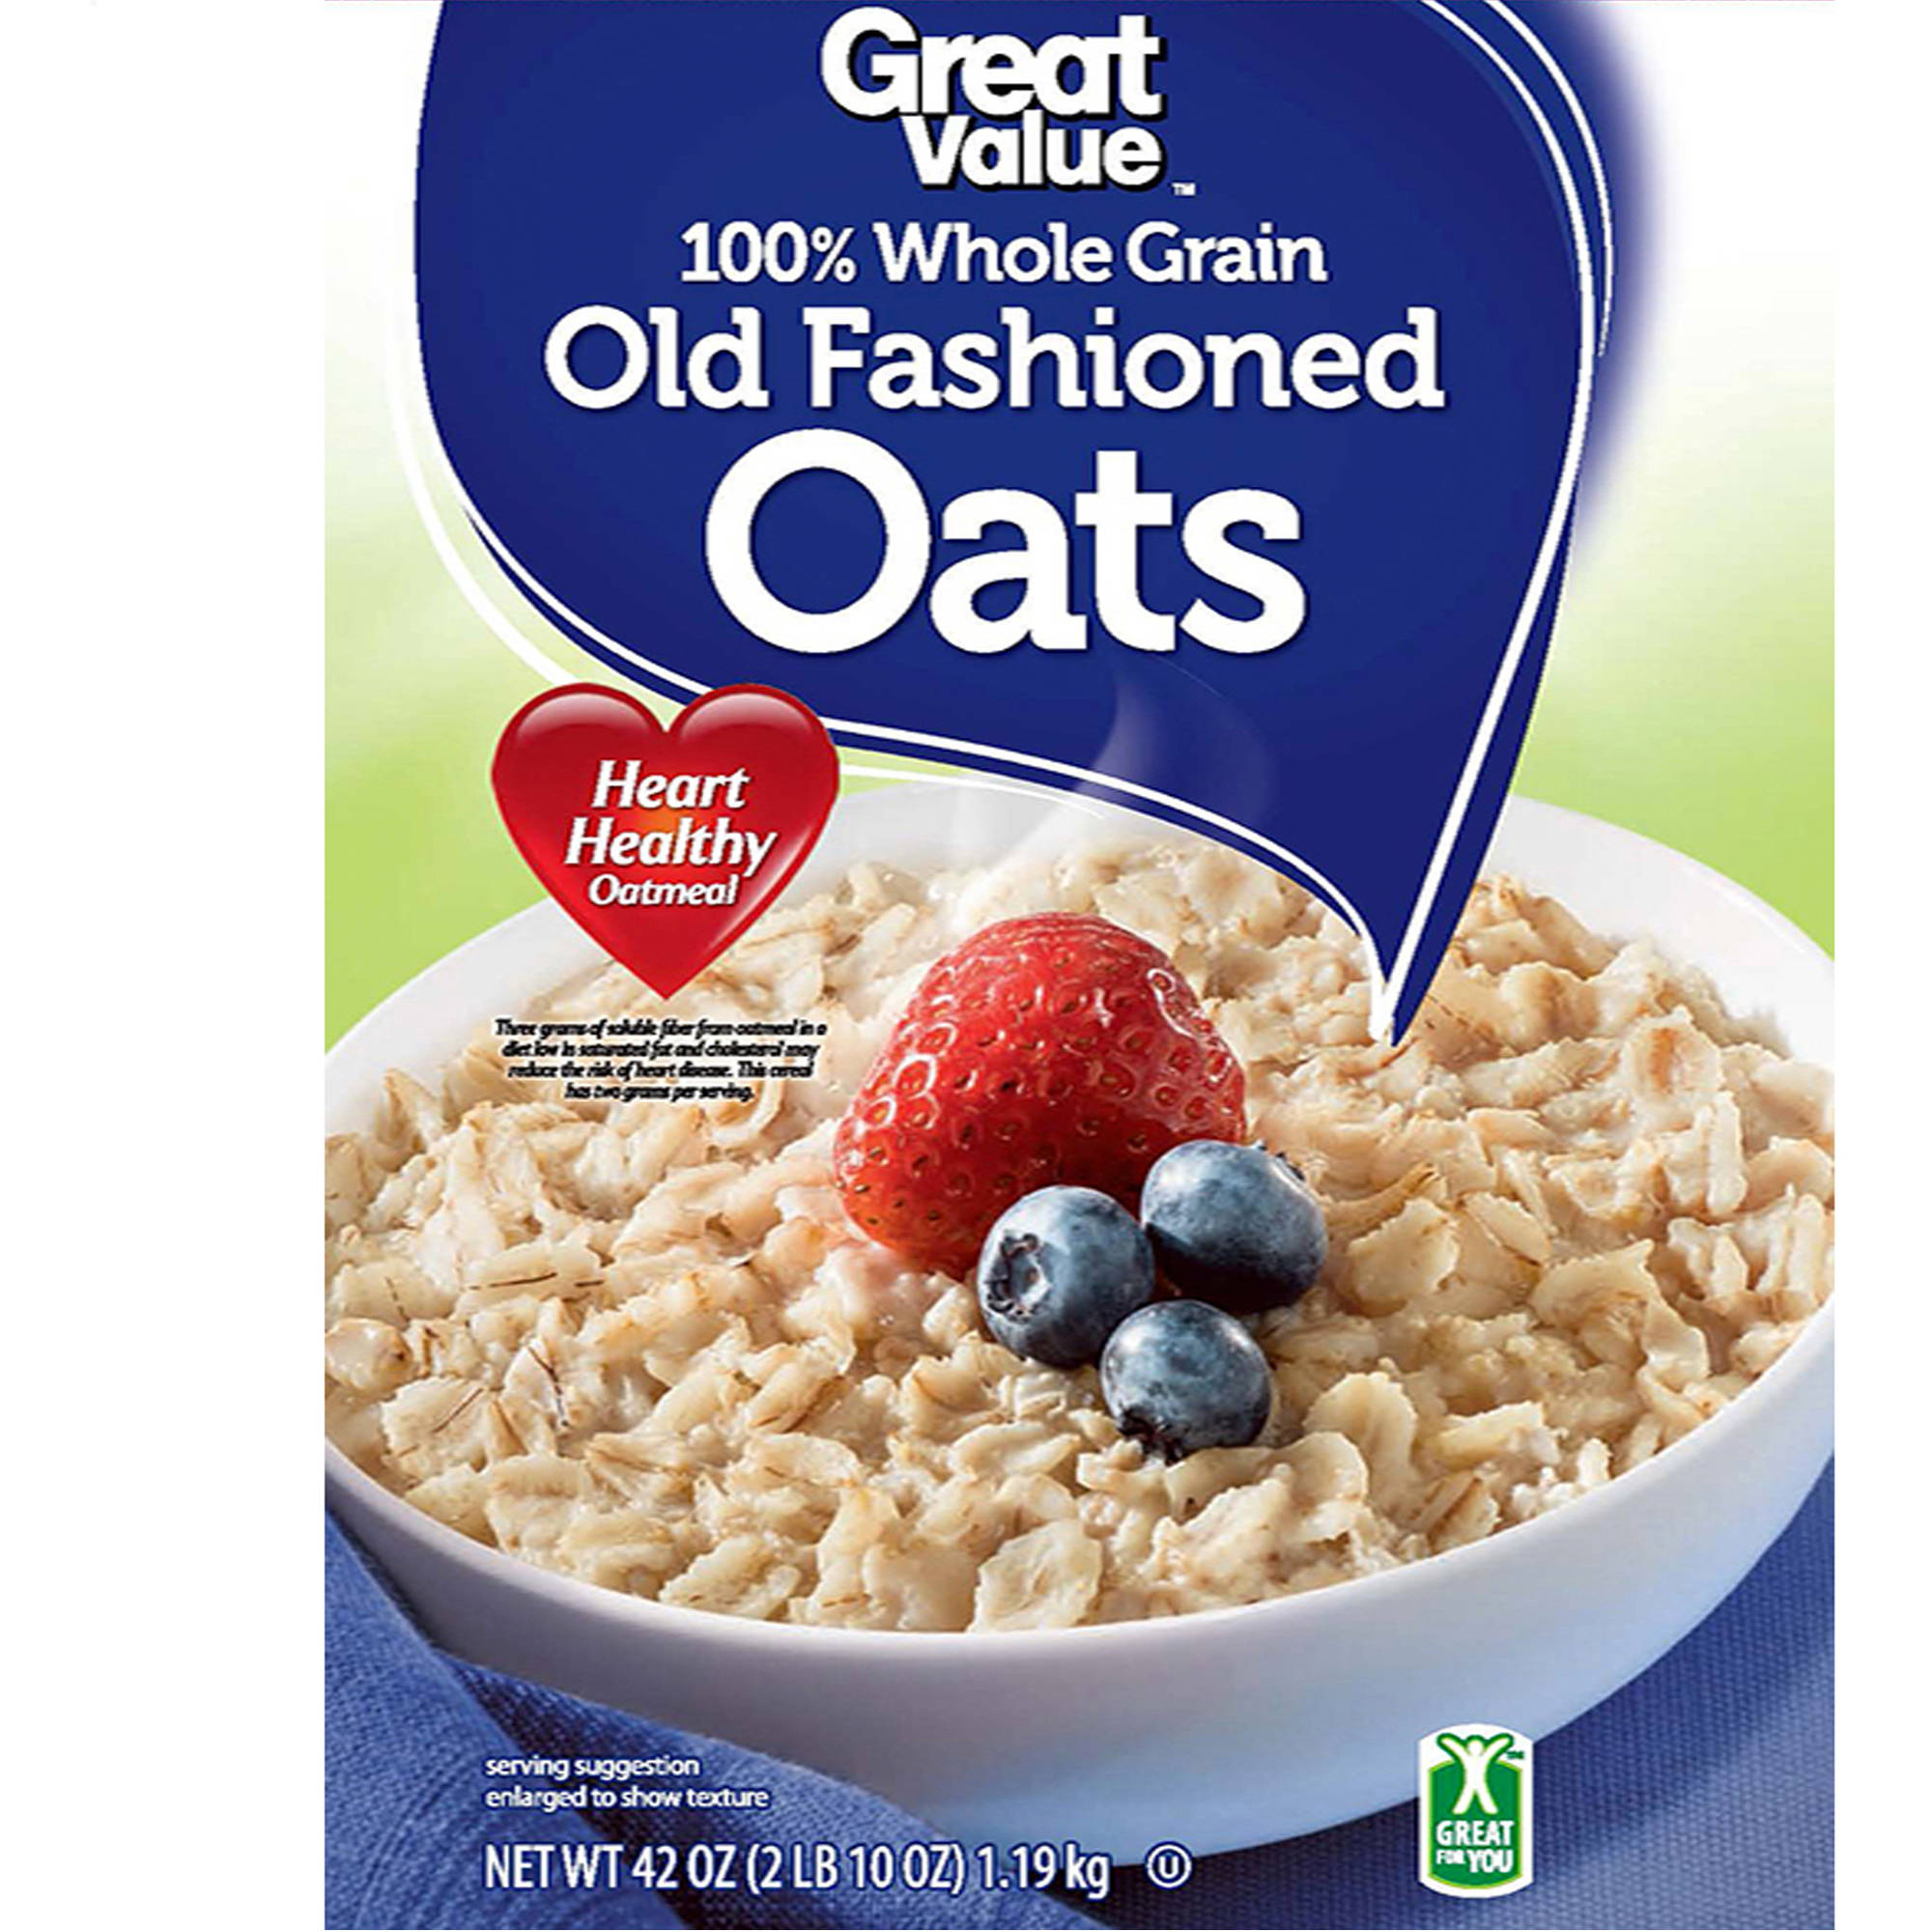 Great Value: Oven-Toasted Old Fashioned Oats, 42 Oz